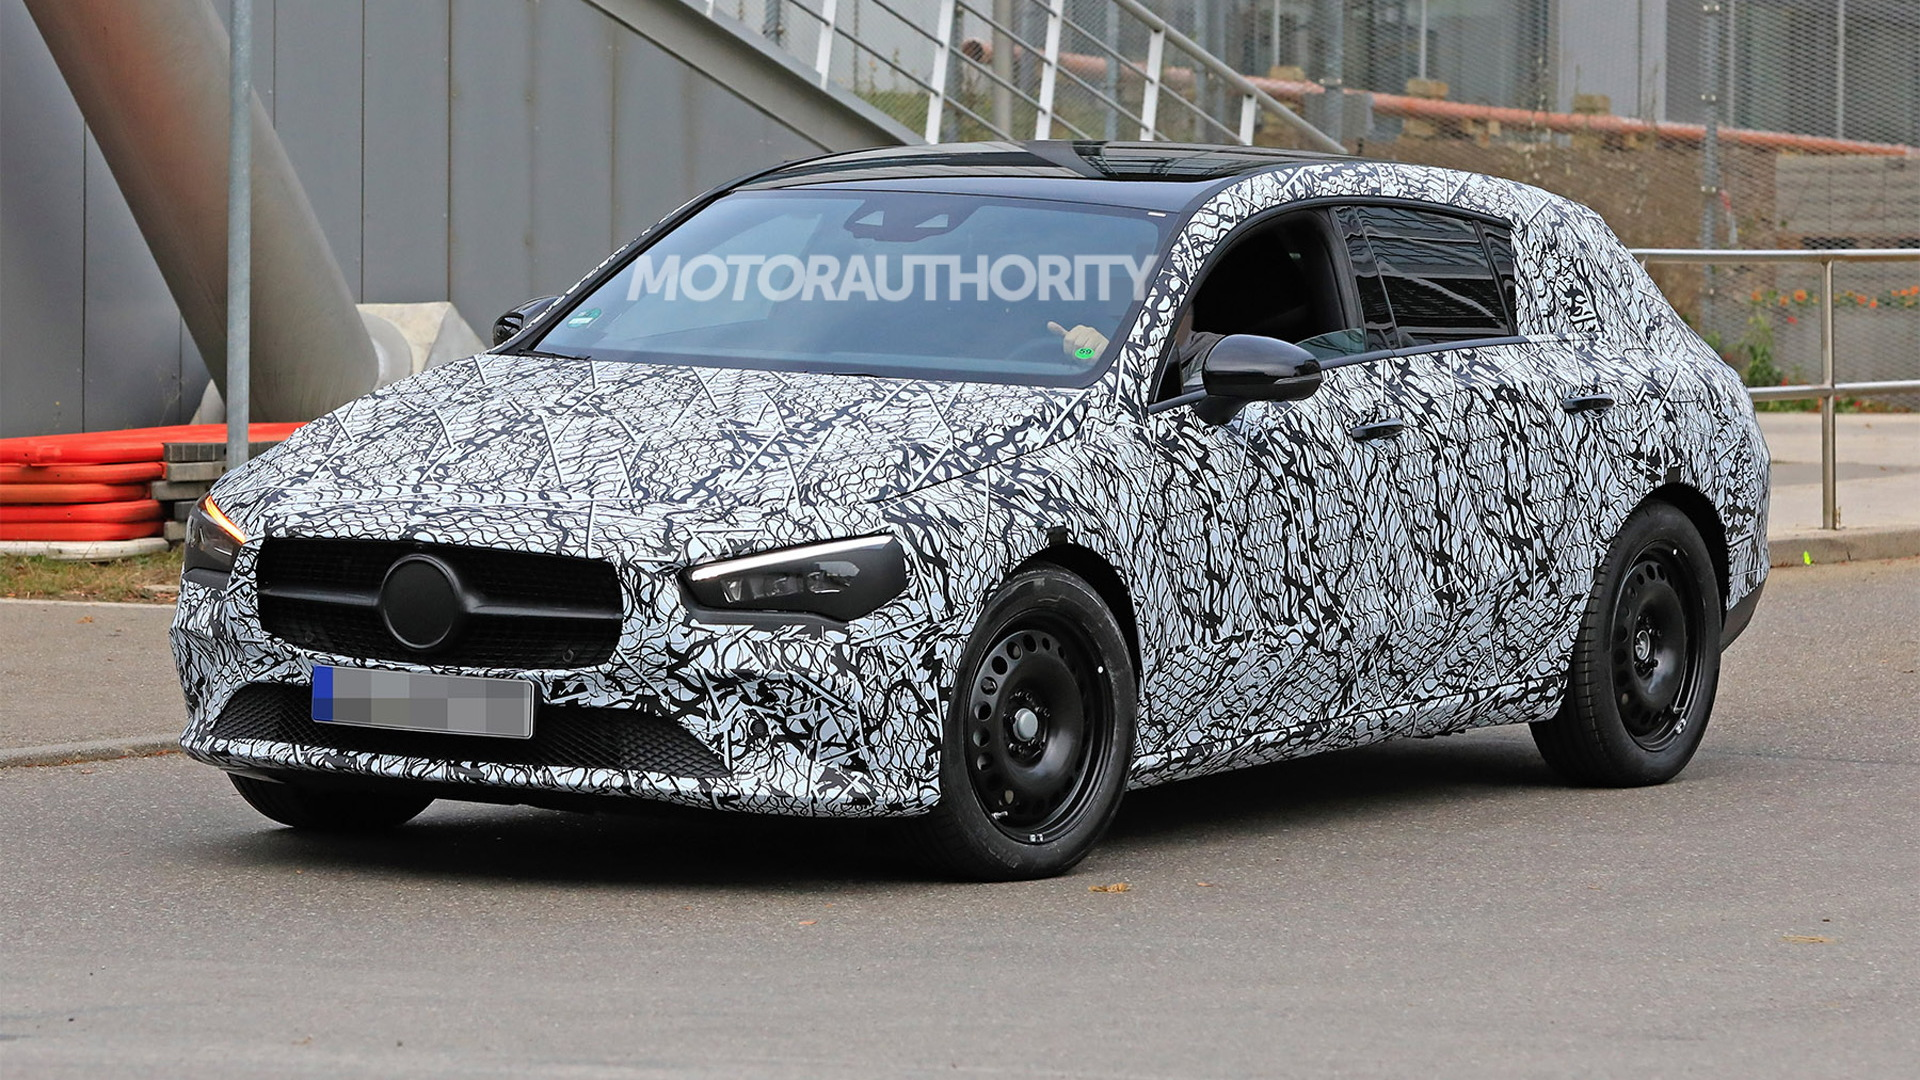 2020 Mercedes-Benz CLA Shooting Brake spy shots - Image via S. Baldauf/SB-Medien